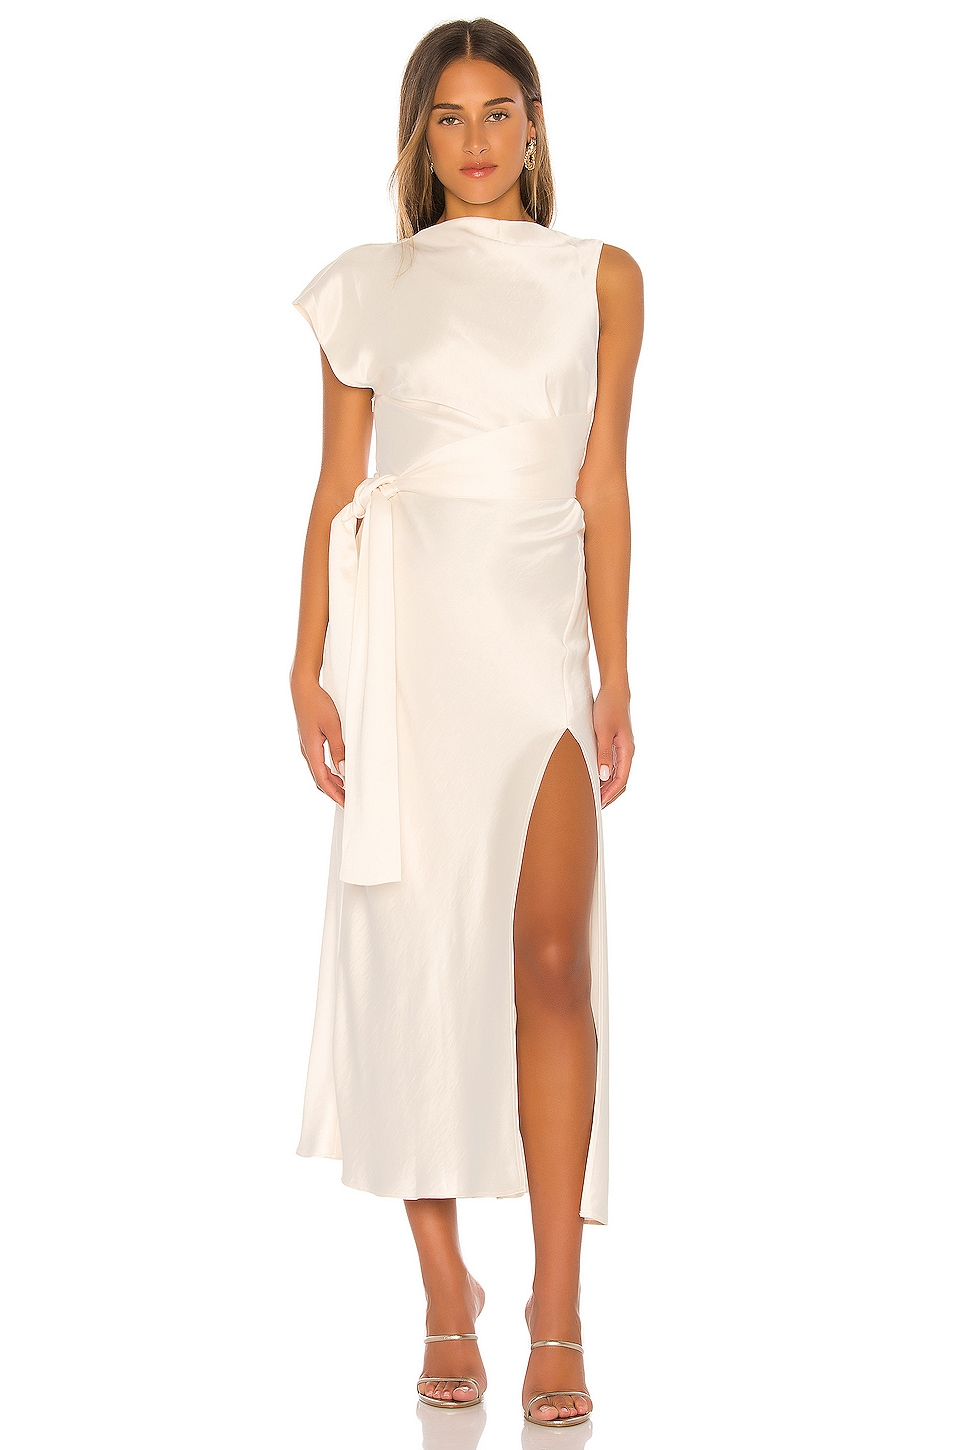 BEC&BRIDGE Piper Asymmetrical Midi Dress in Ivory